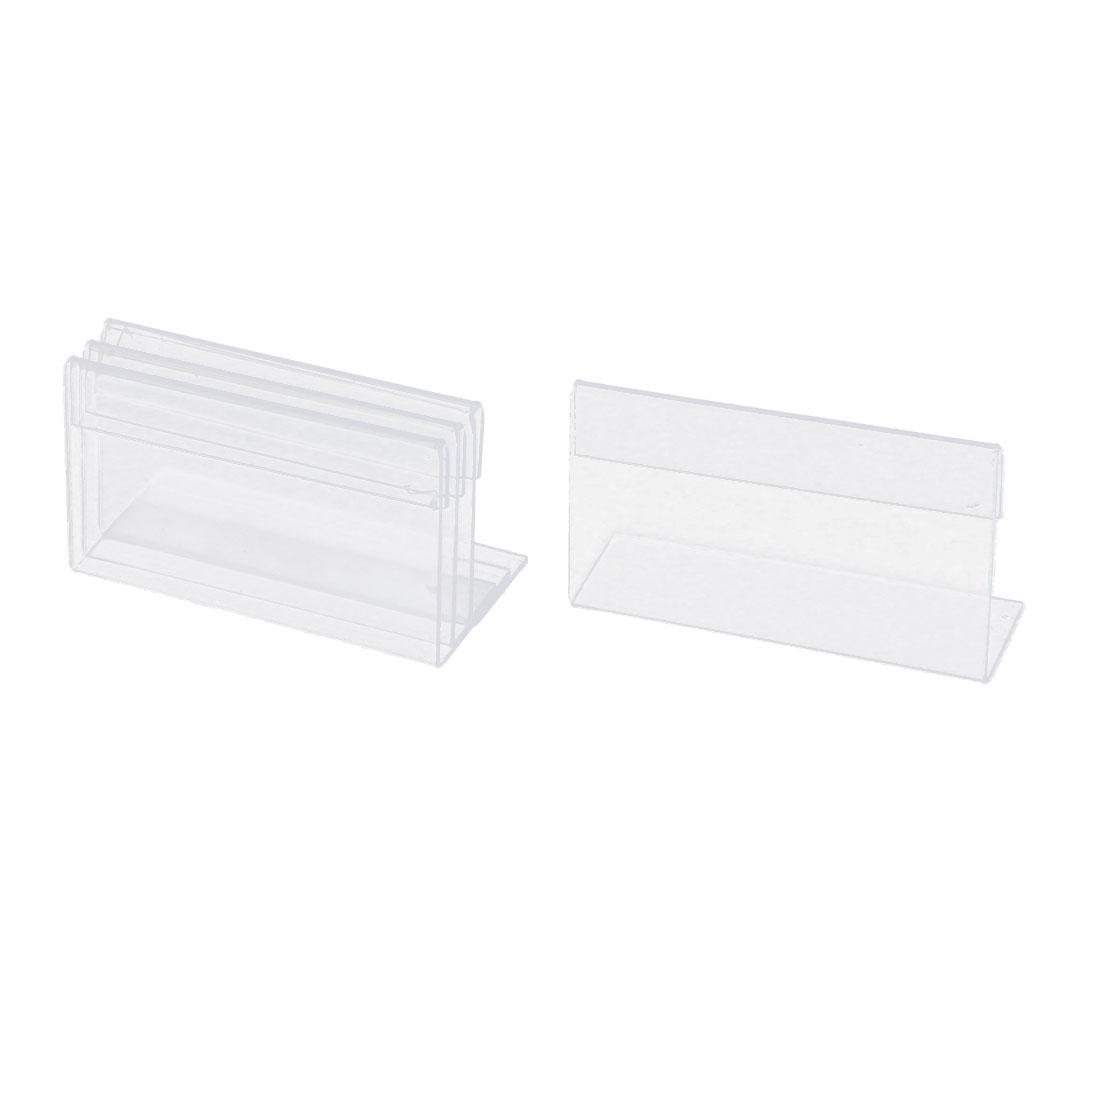 4pcs Clear Plastic Sign Tag Label Card Display Holder Stand